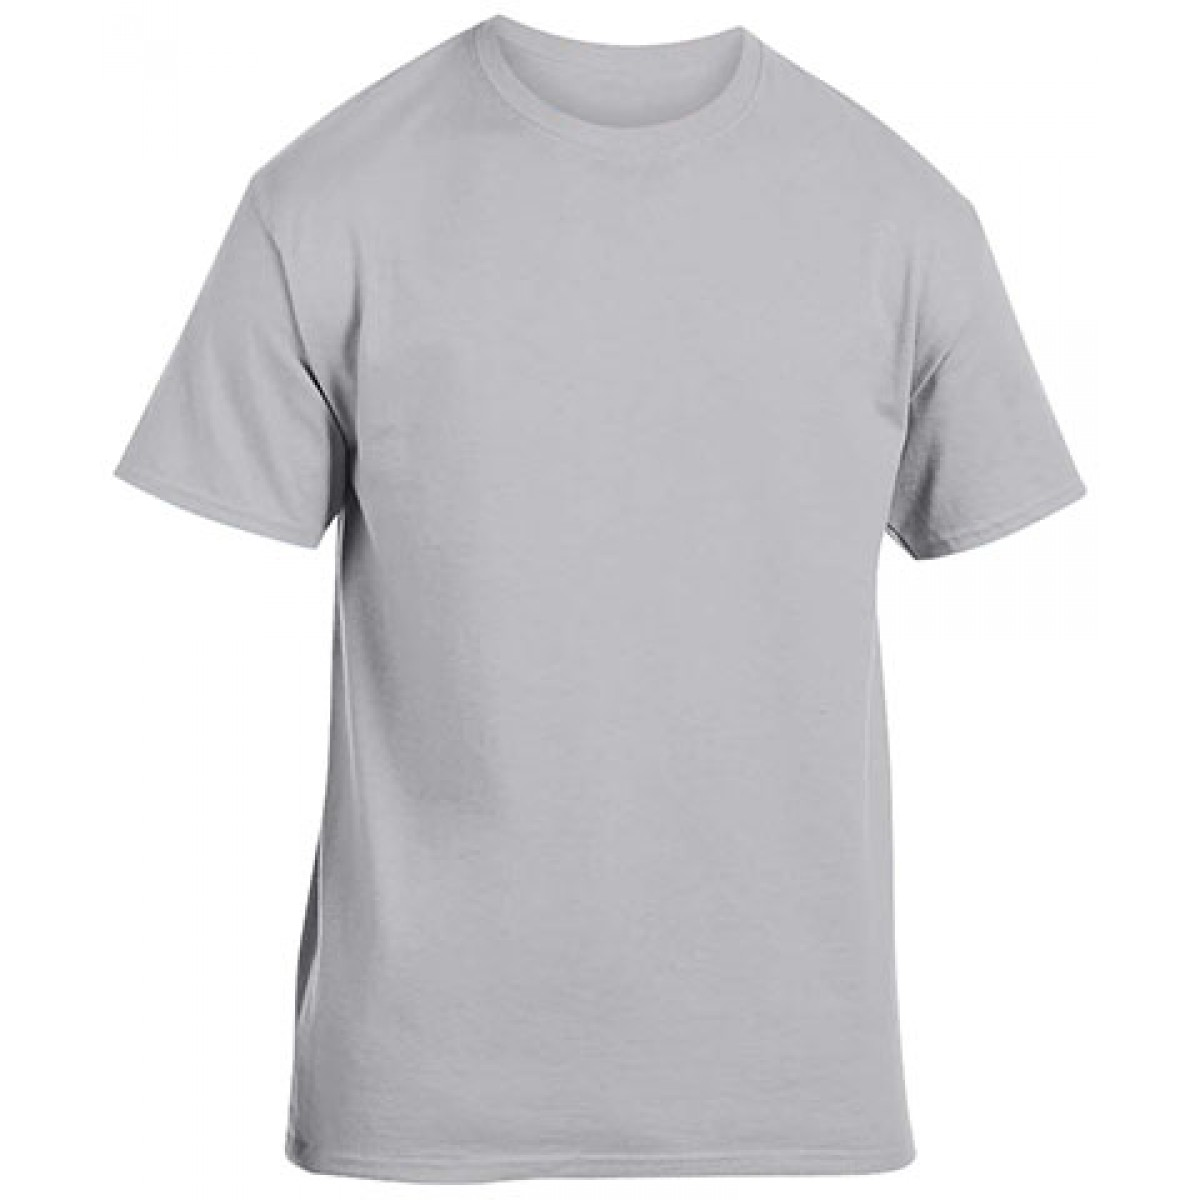 Cotton Short Sleeve T-Shirt-Gray-M